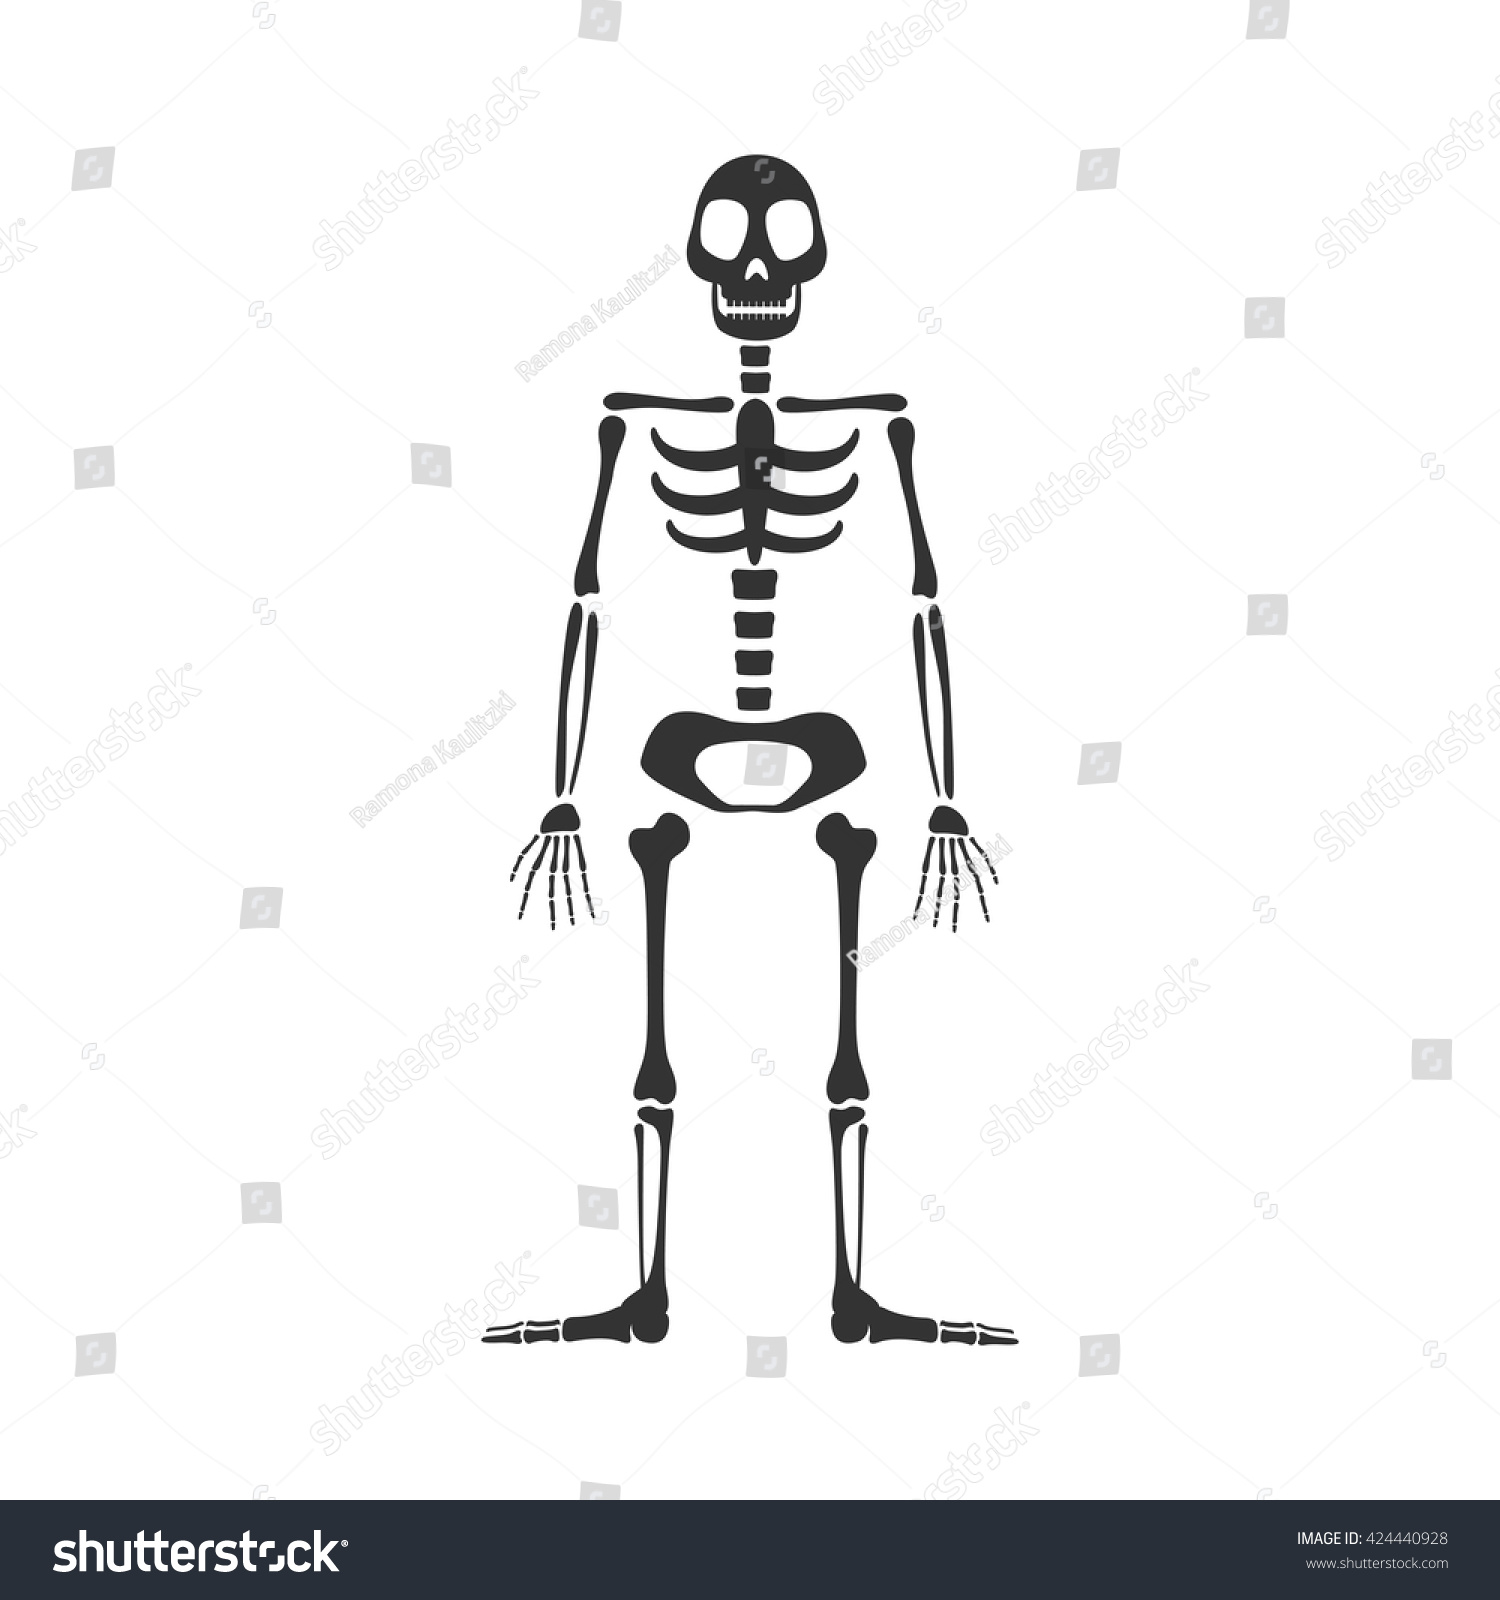 Vector Illustration Skeleton Stock Vector 424440928 - Shutterstock